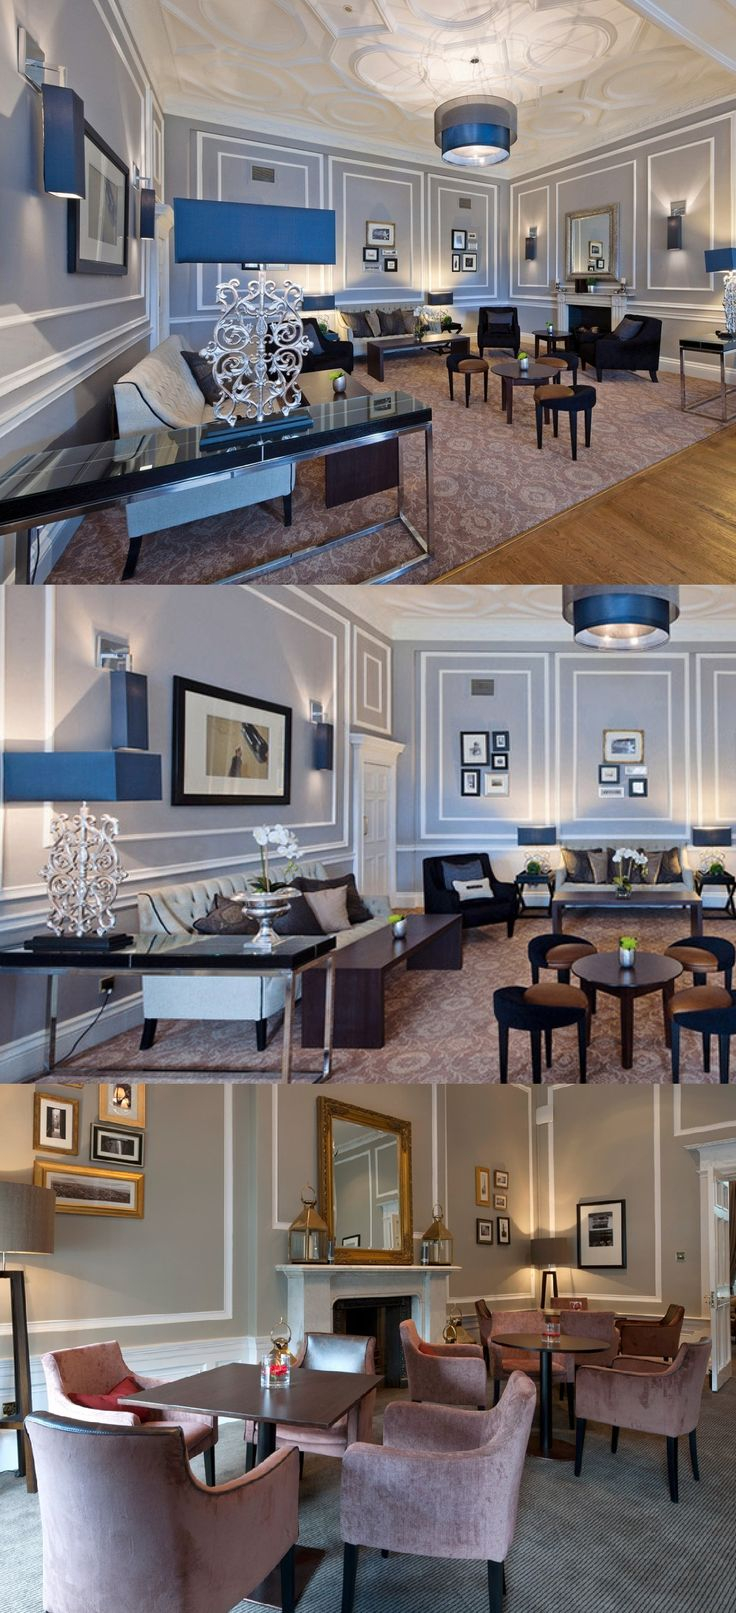 17 best images about luxury hotel guest rooms on pinterest for Interior design solutions